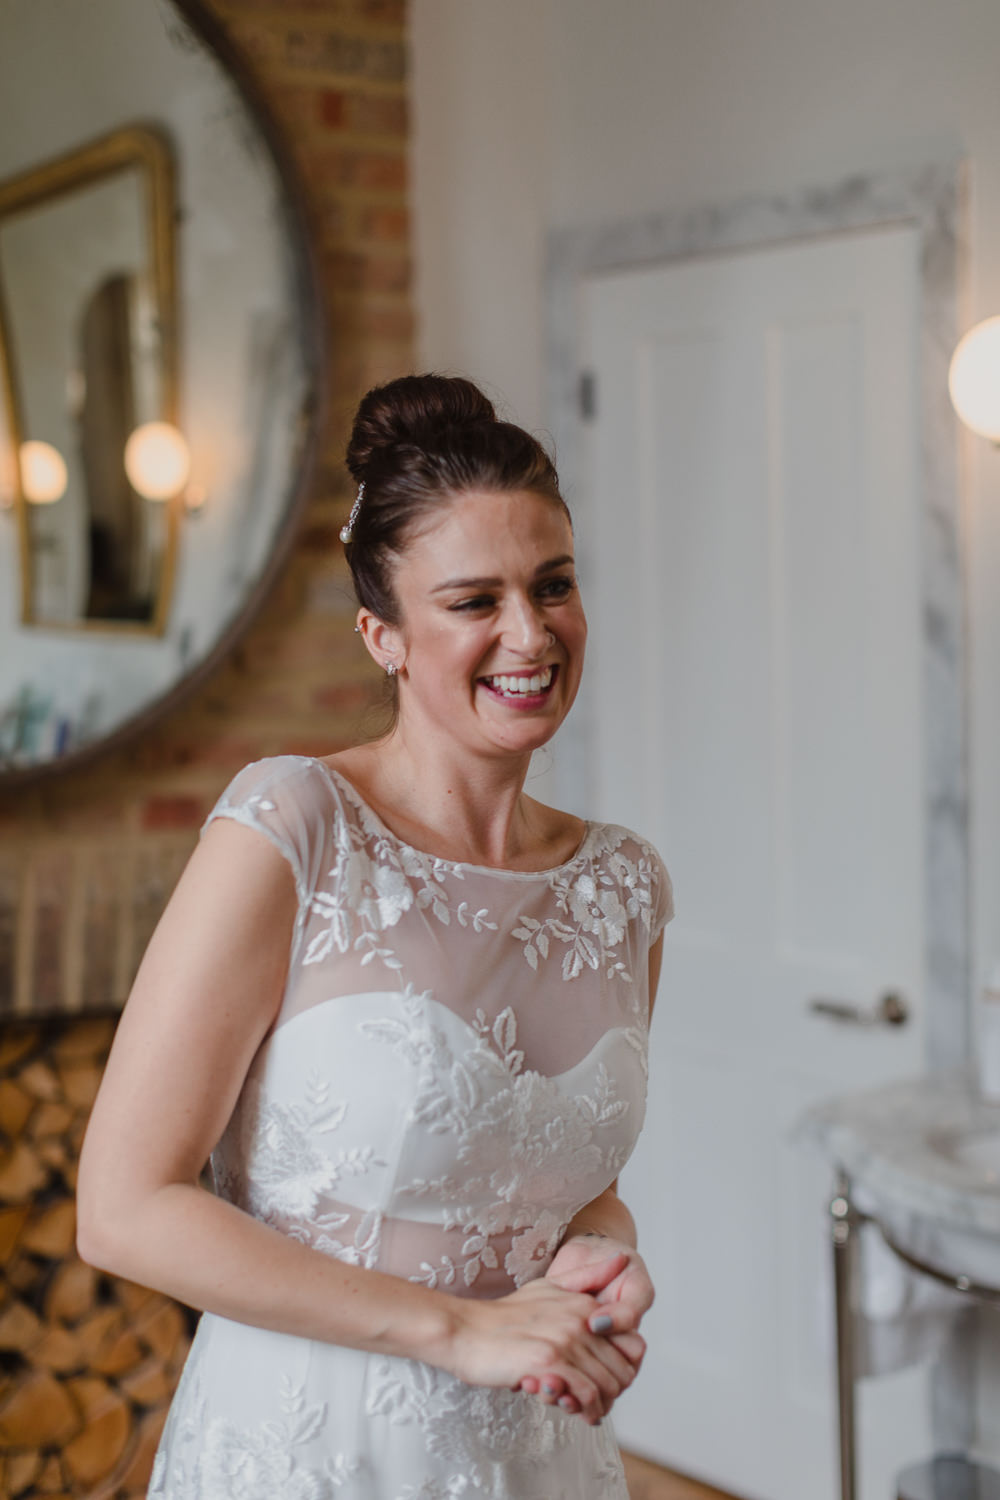 Bride Bridal Hair Up Do Bun Asylum London Wedding Emma Gates Photography